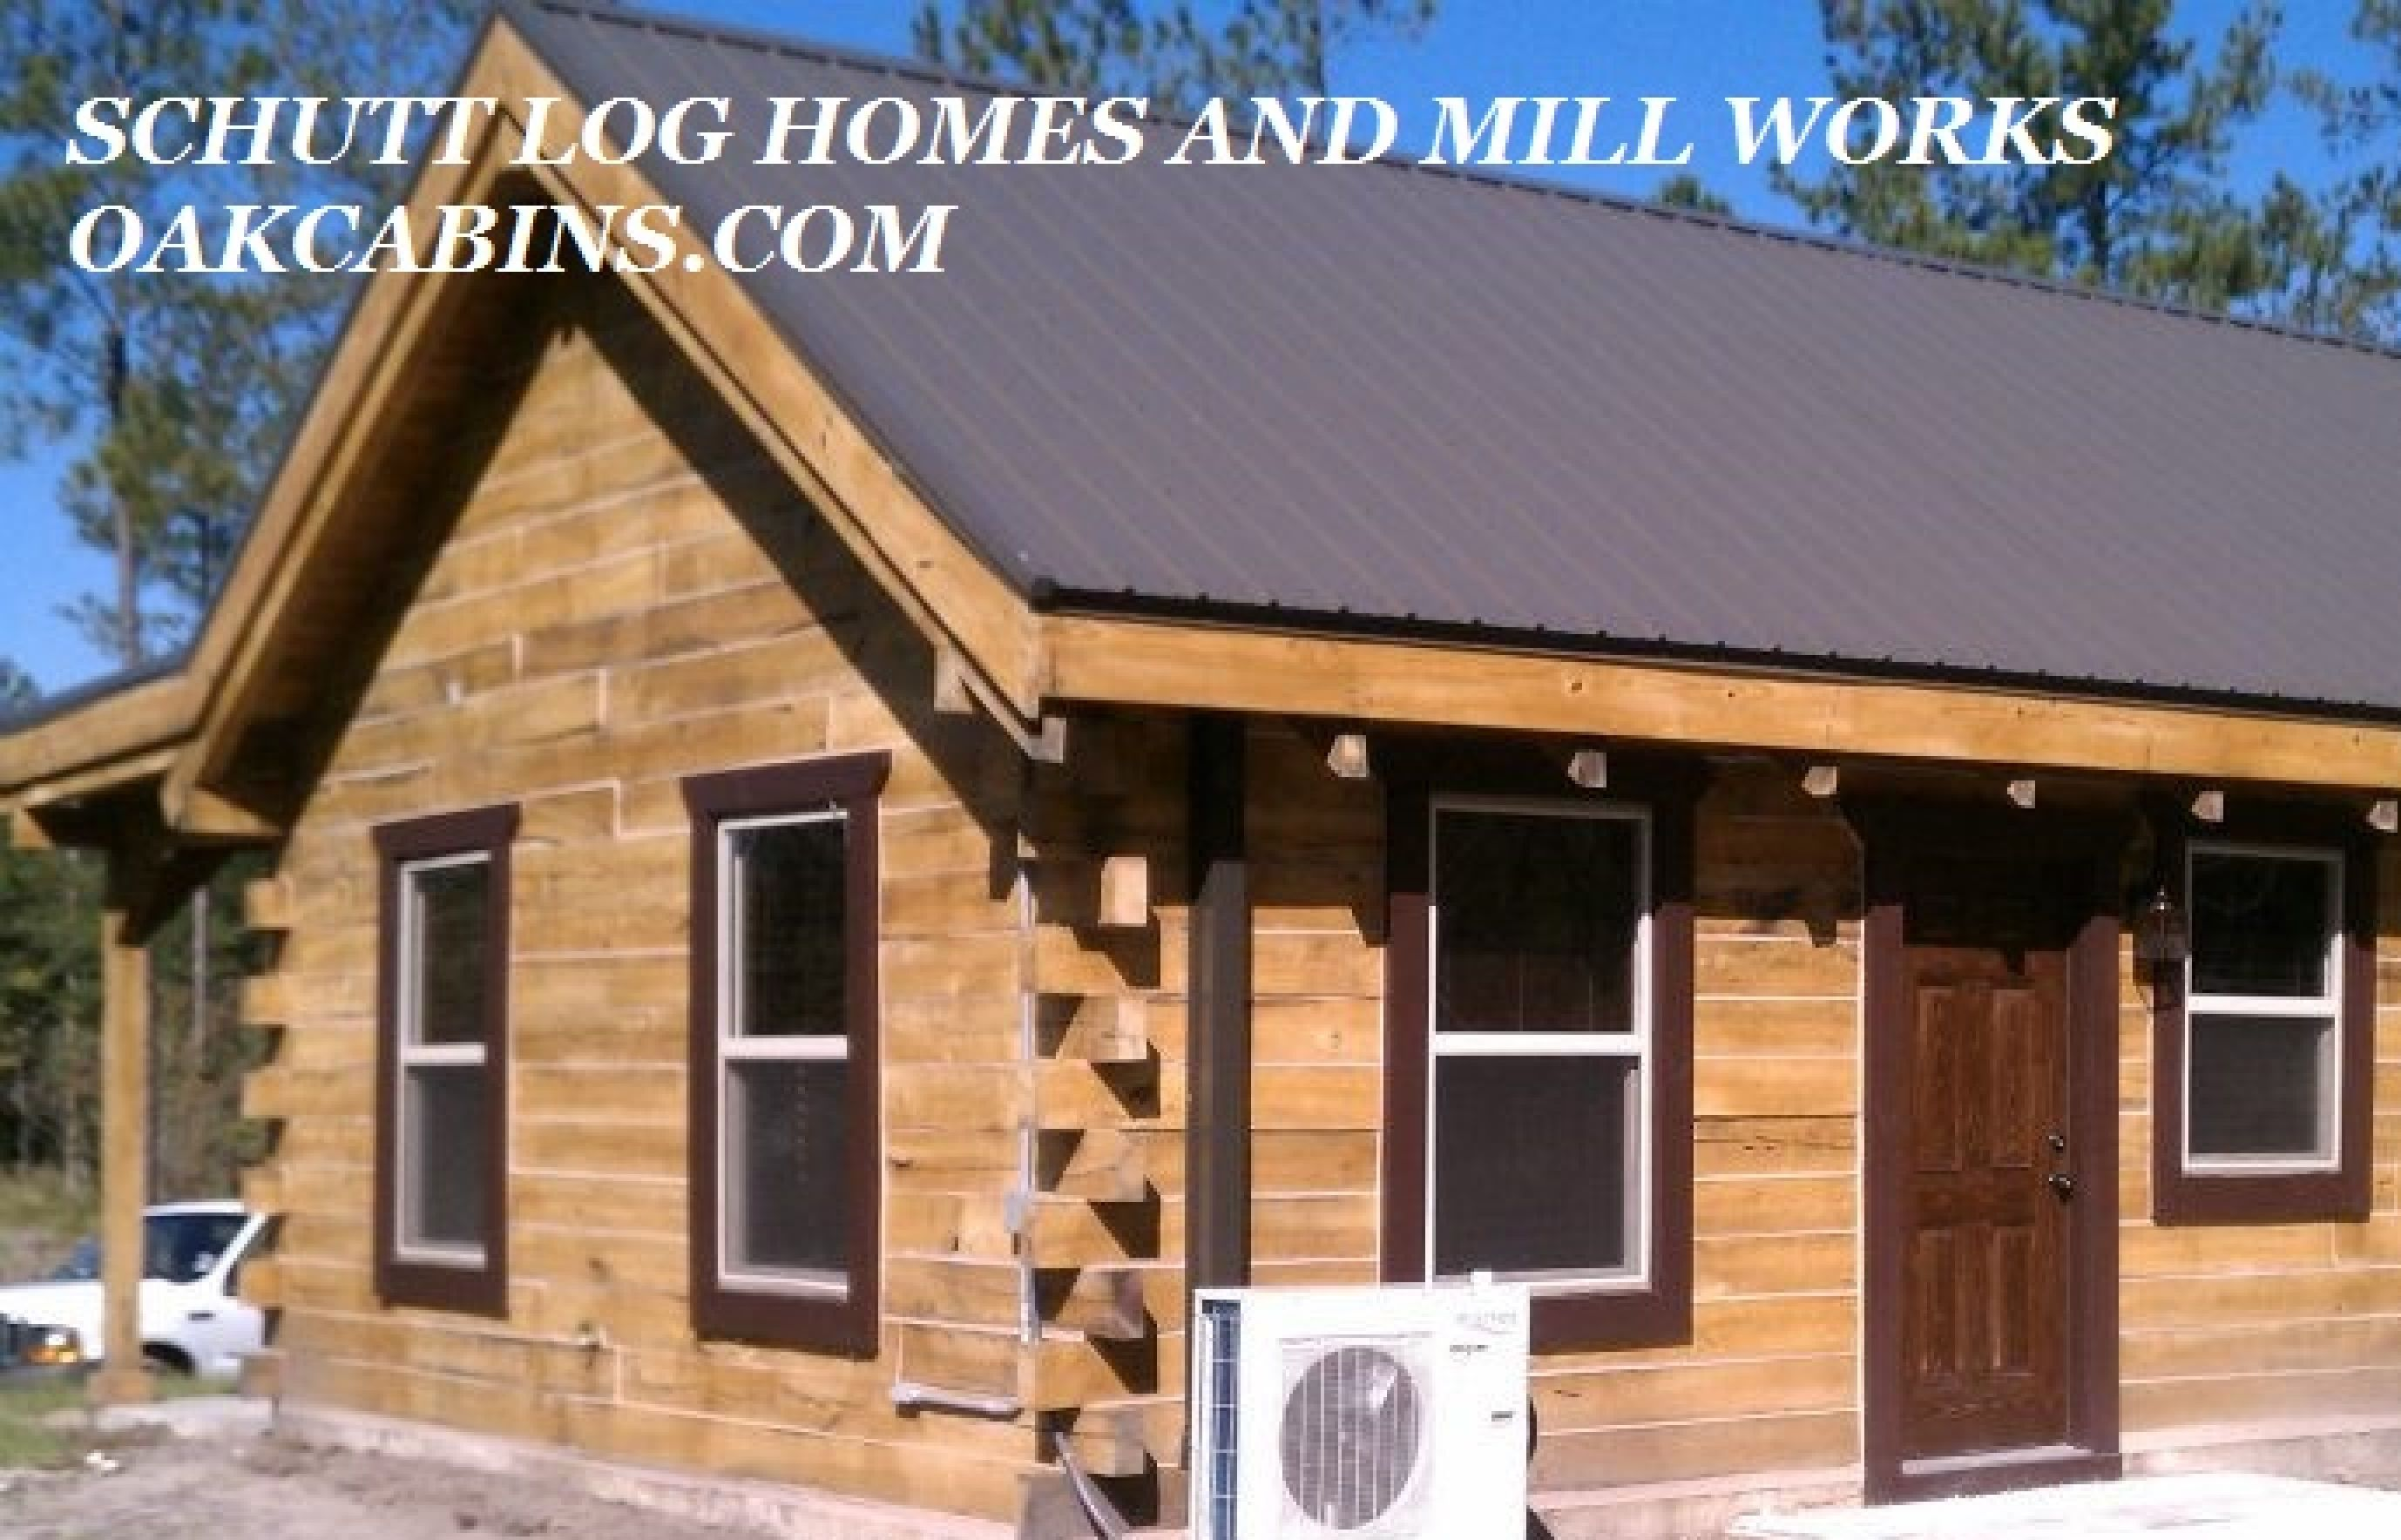 3 Bedroom Hunting Cabin Kit Schutt Log Homes And Mill Works Cabin House Plans Cabin Kits Log Cabin Kits